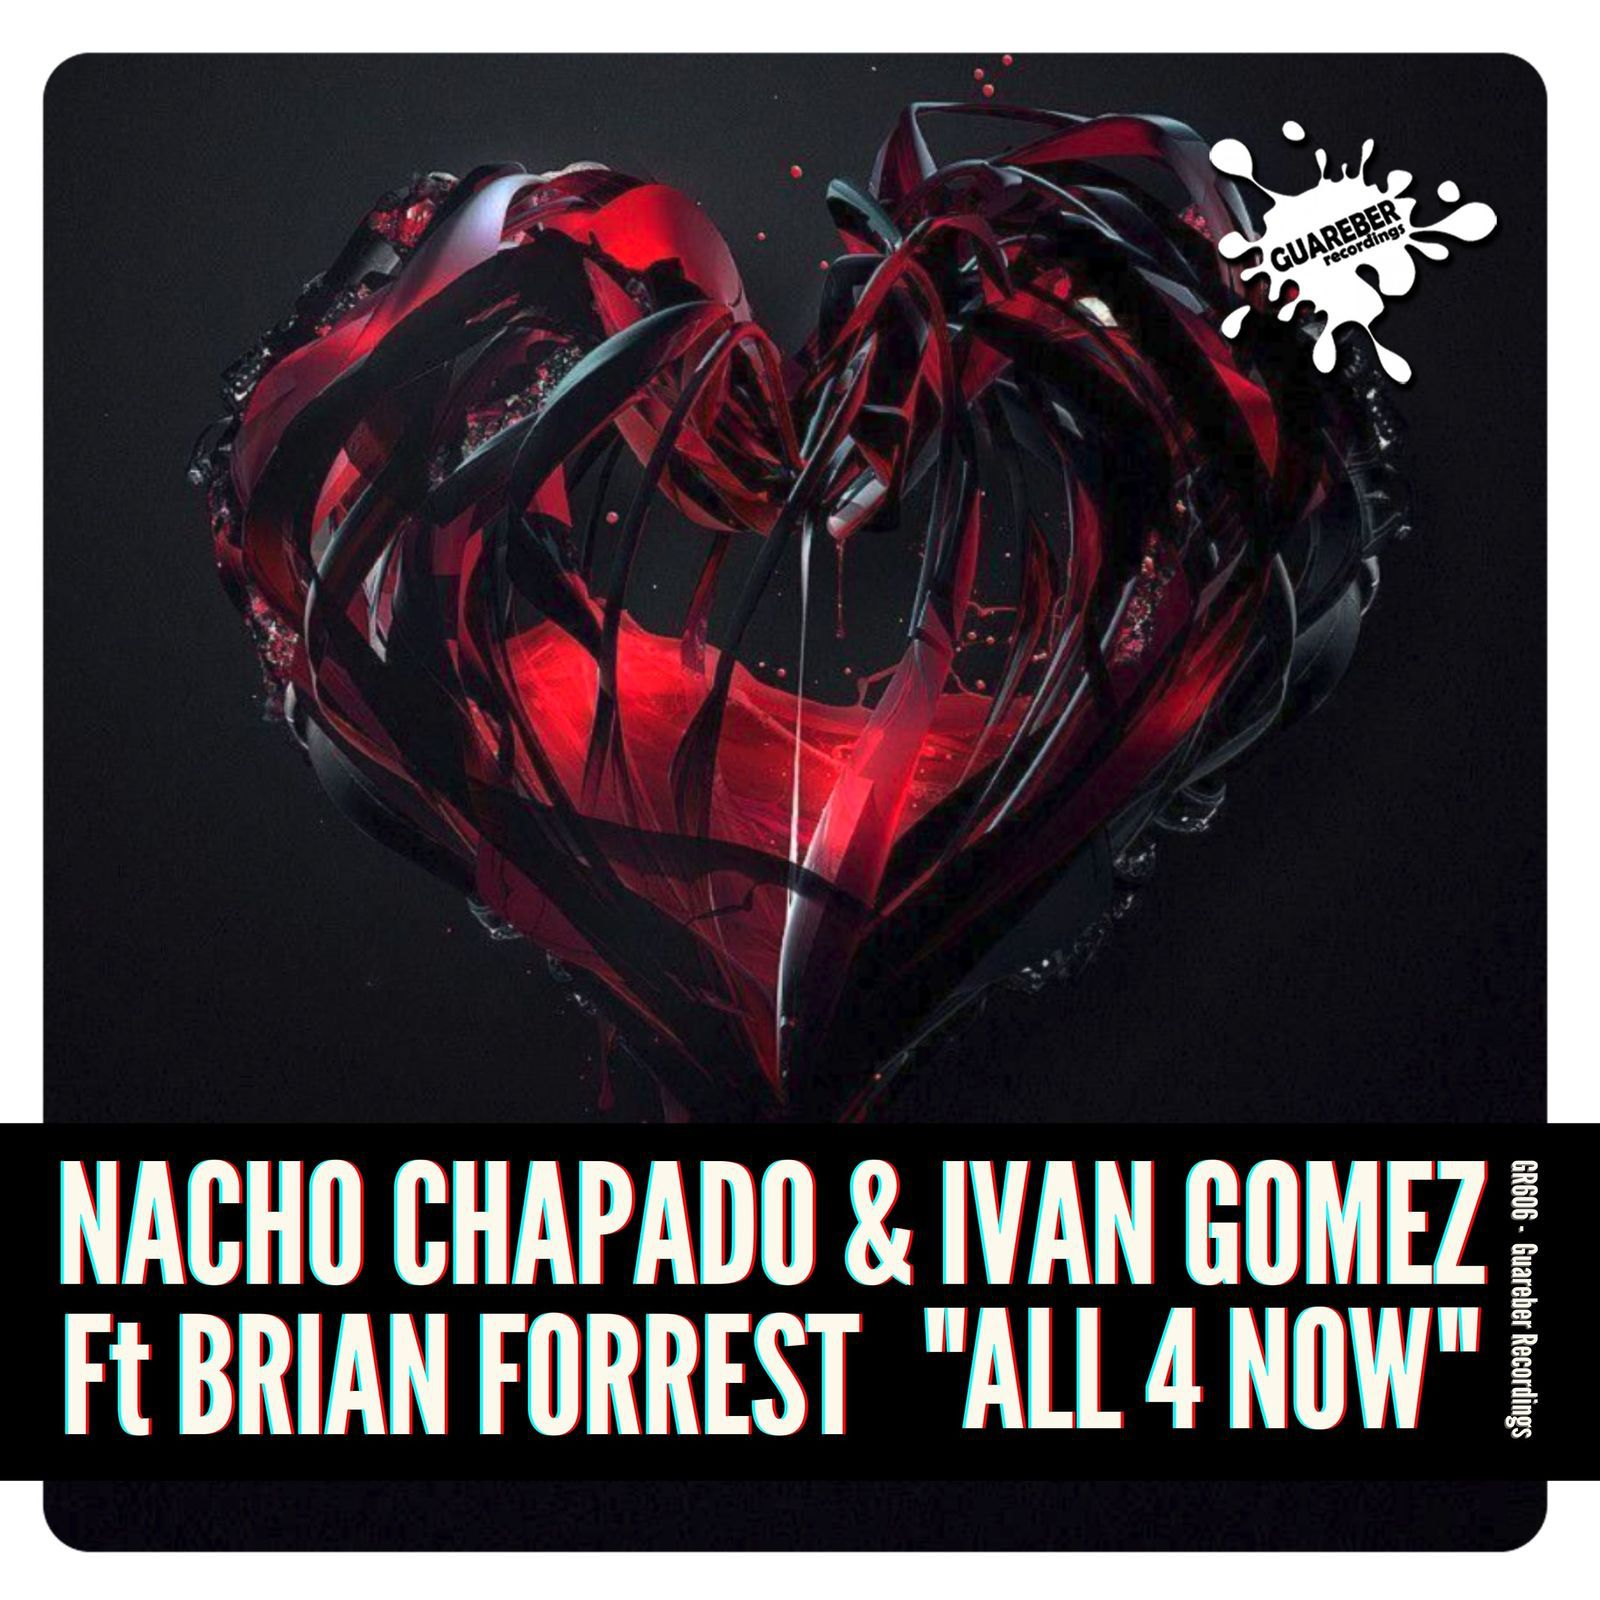 GR606 Nacho Chapado & Ivan Gomez Ft Brian Forrest - All 4 Now (Original Mix)